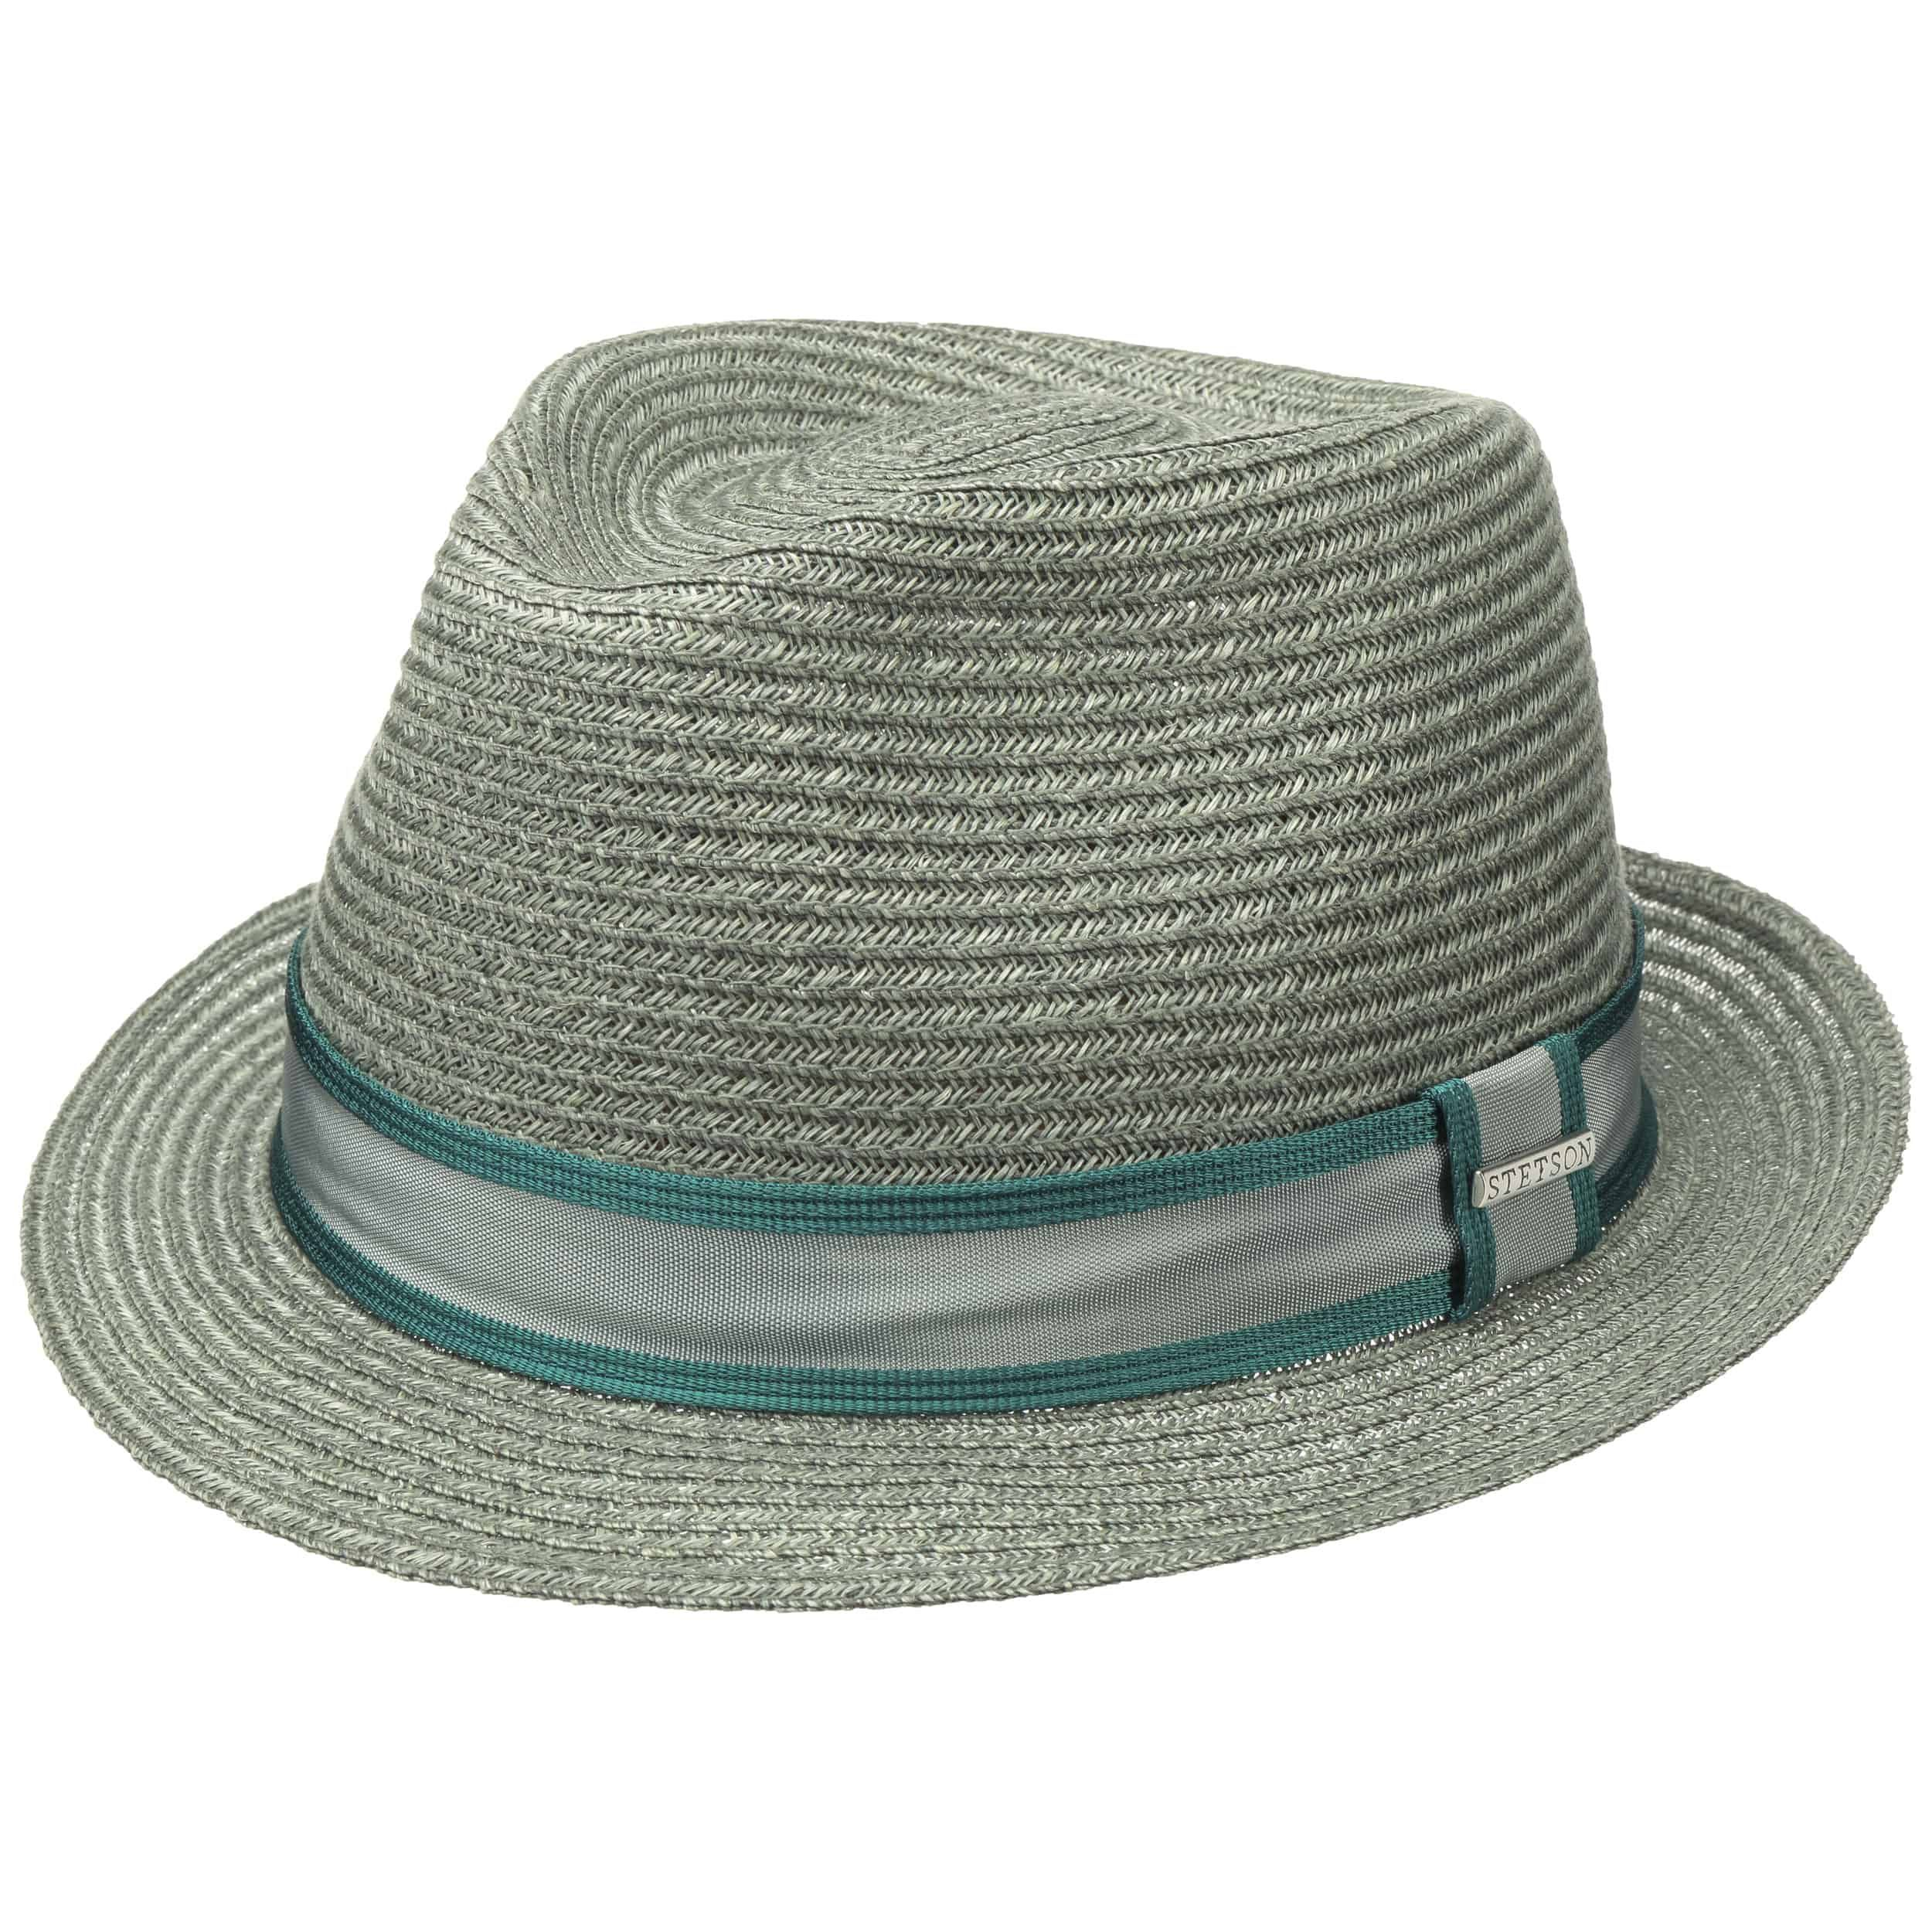 Ashville Abaca Trilby Straw Hat turquoise